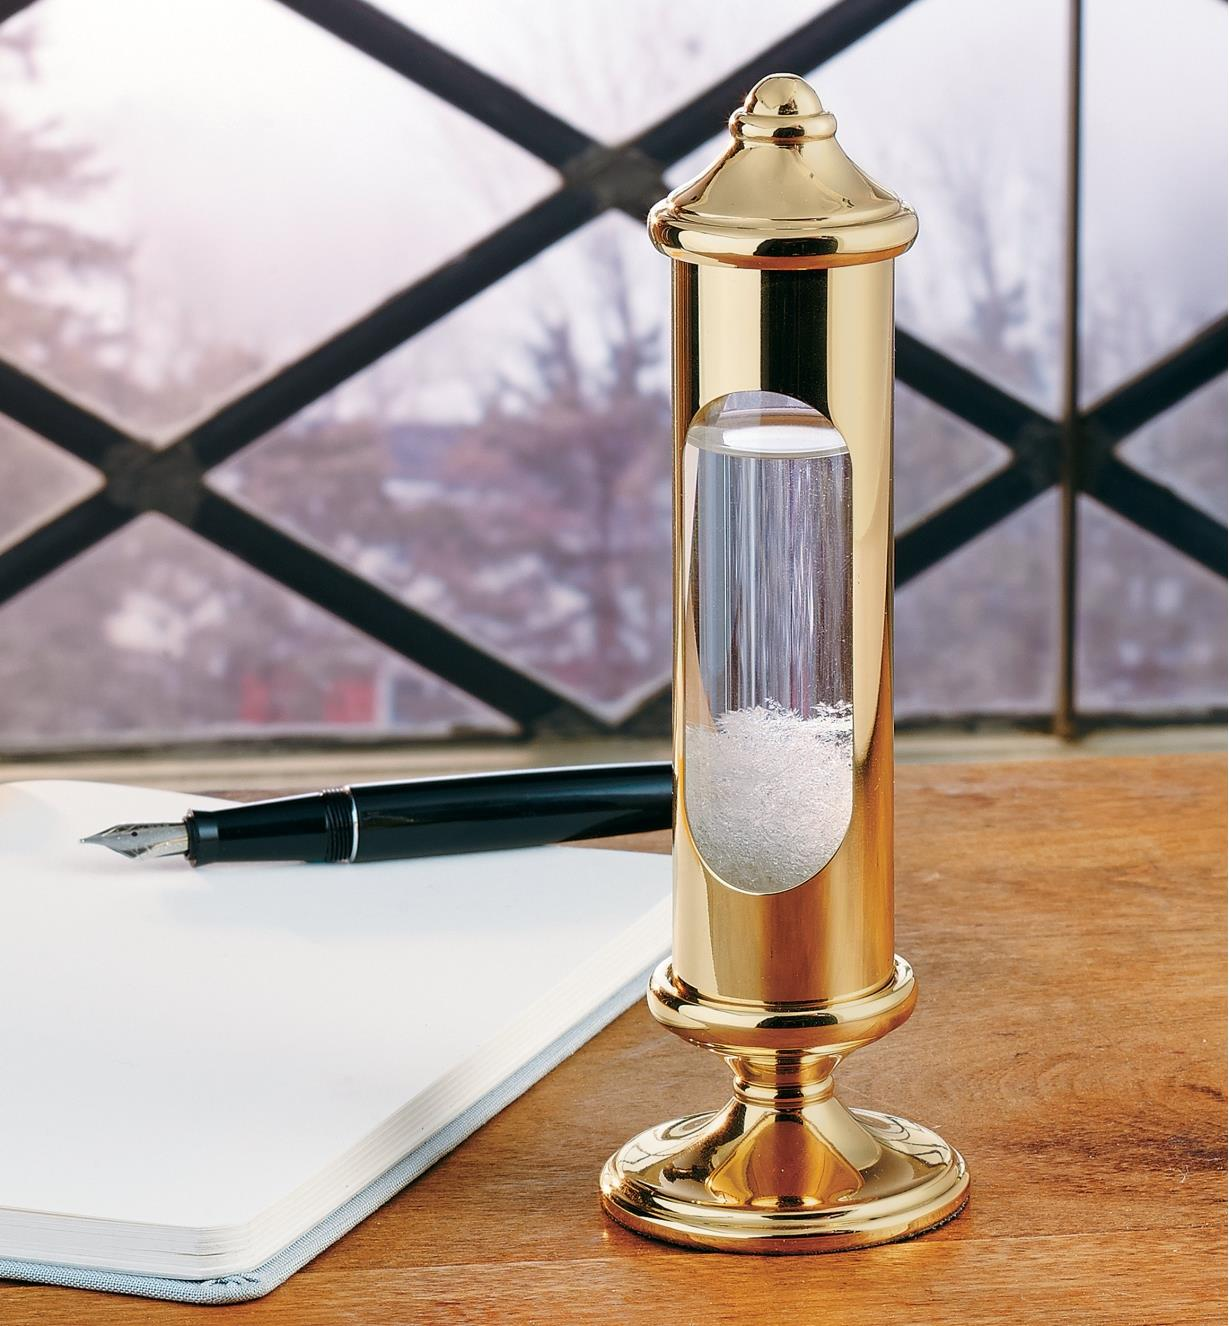 Admiral FitzRoy's Stormglass sitting on a desk by a window